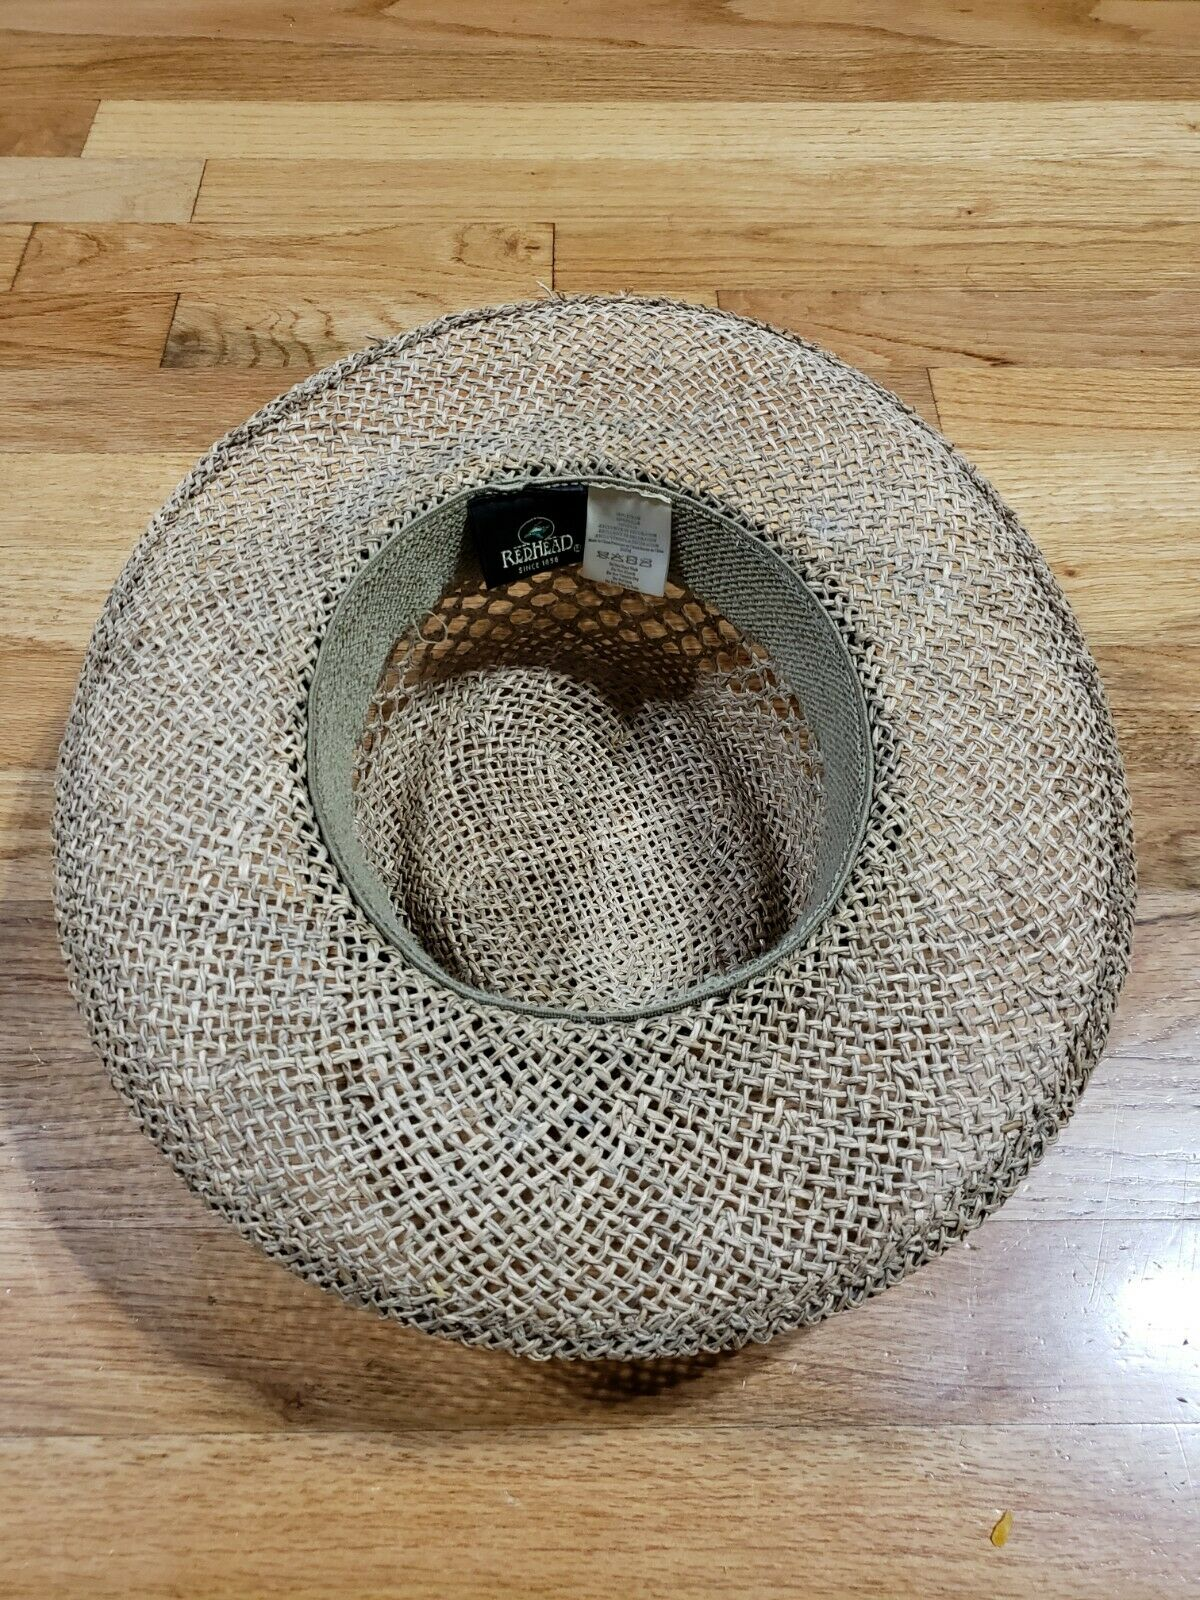 Authentic RedHead Straw Hat Cap 100% Straw One Si… - image 5